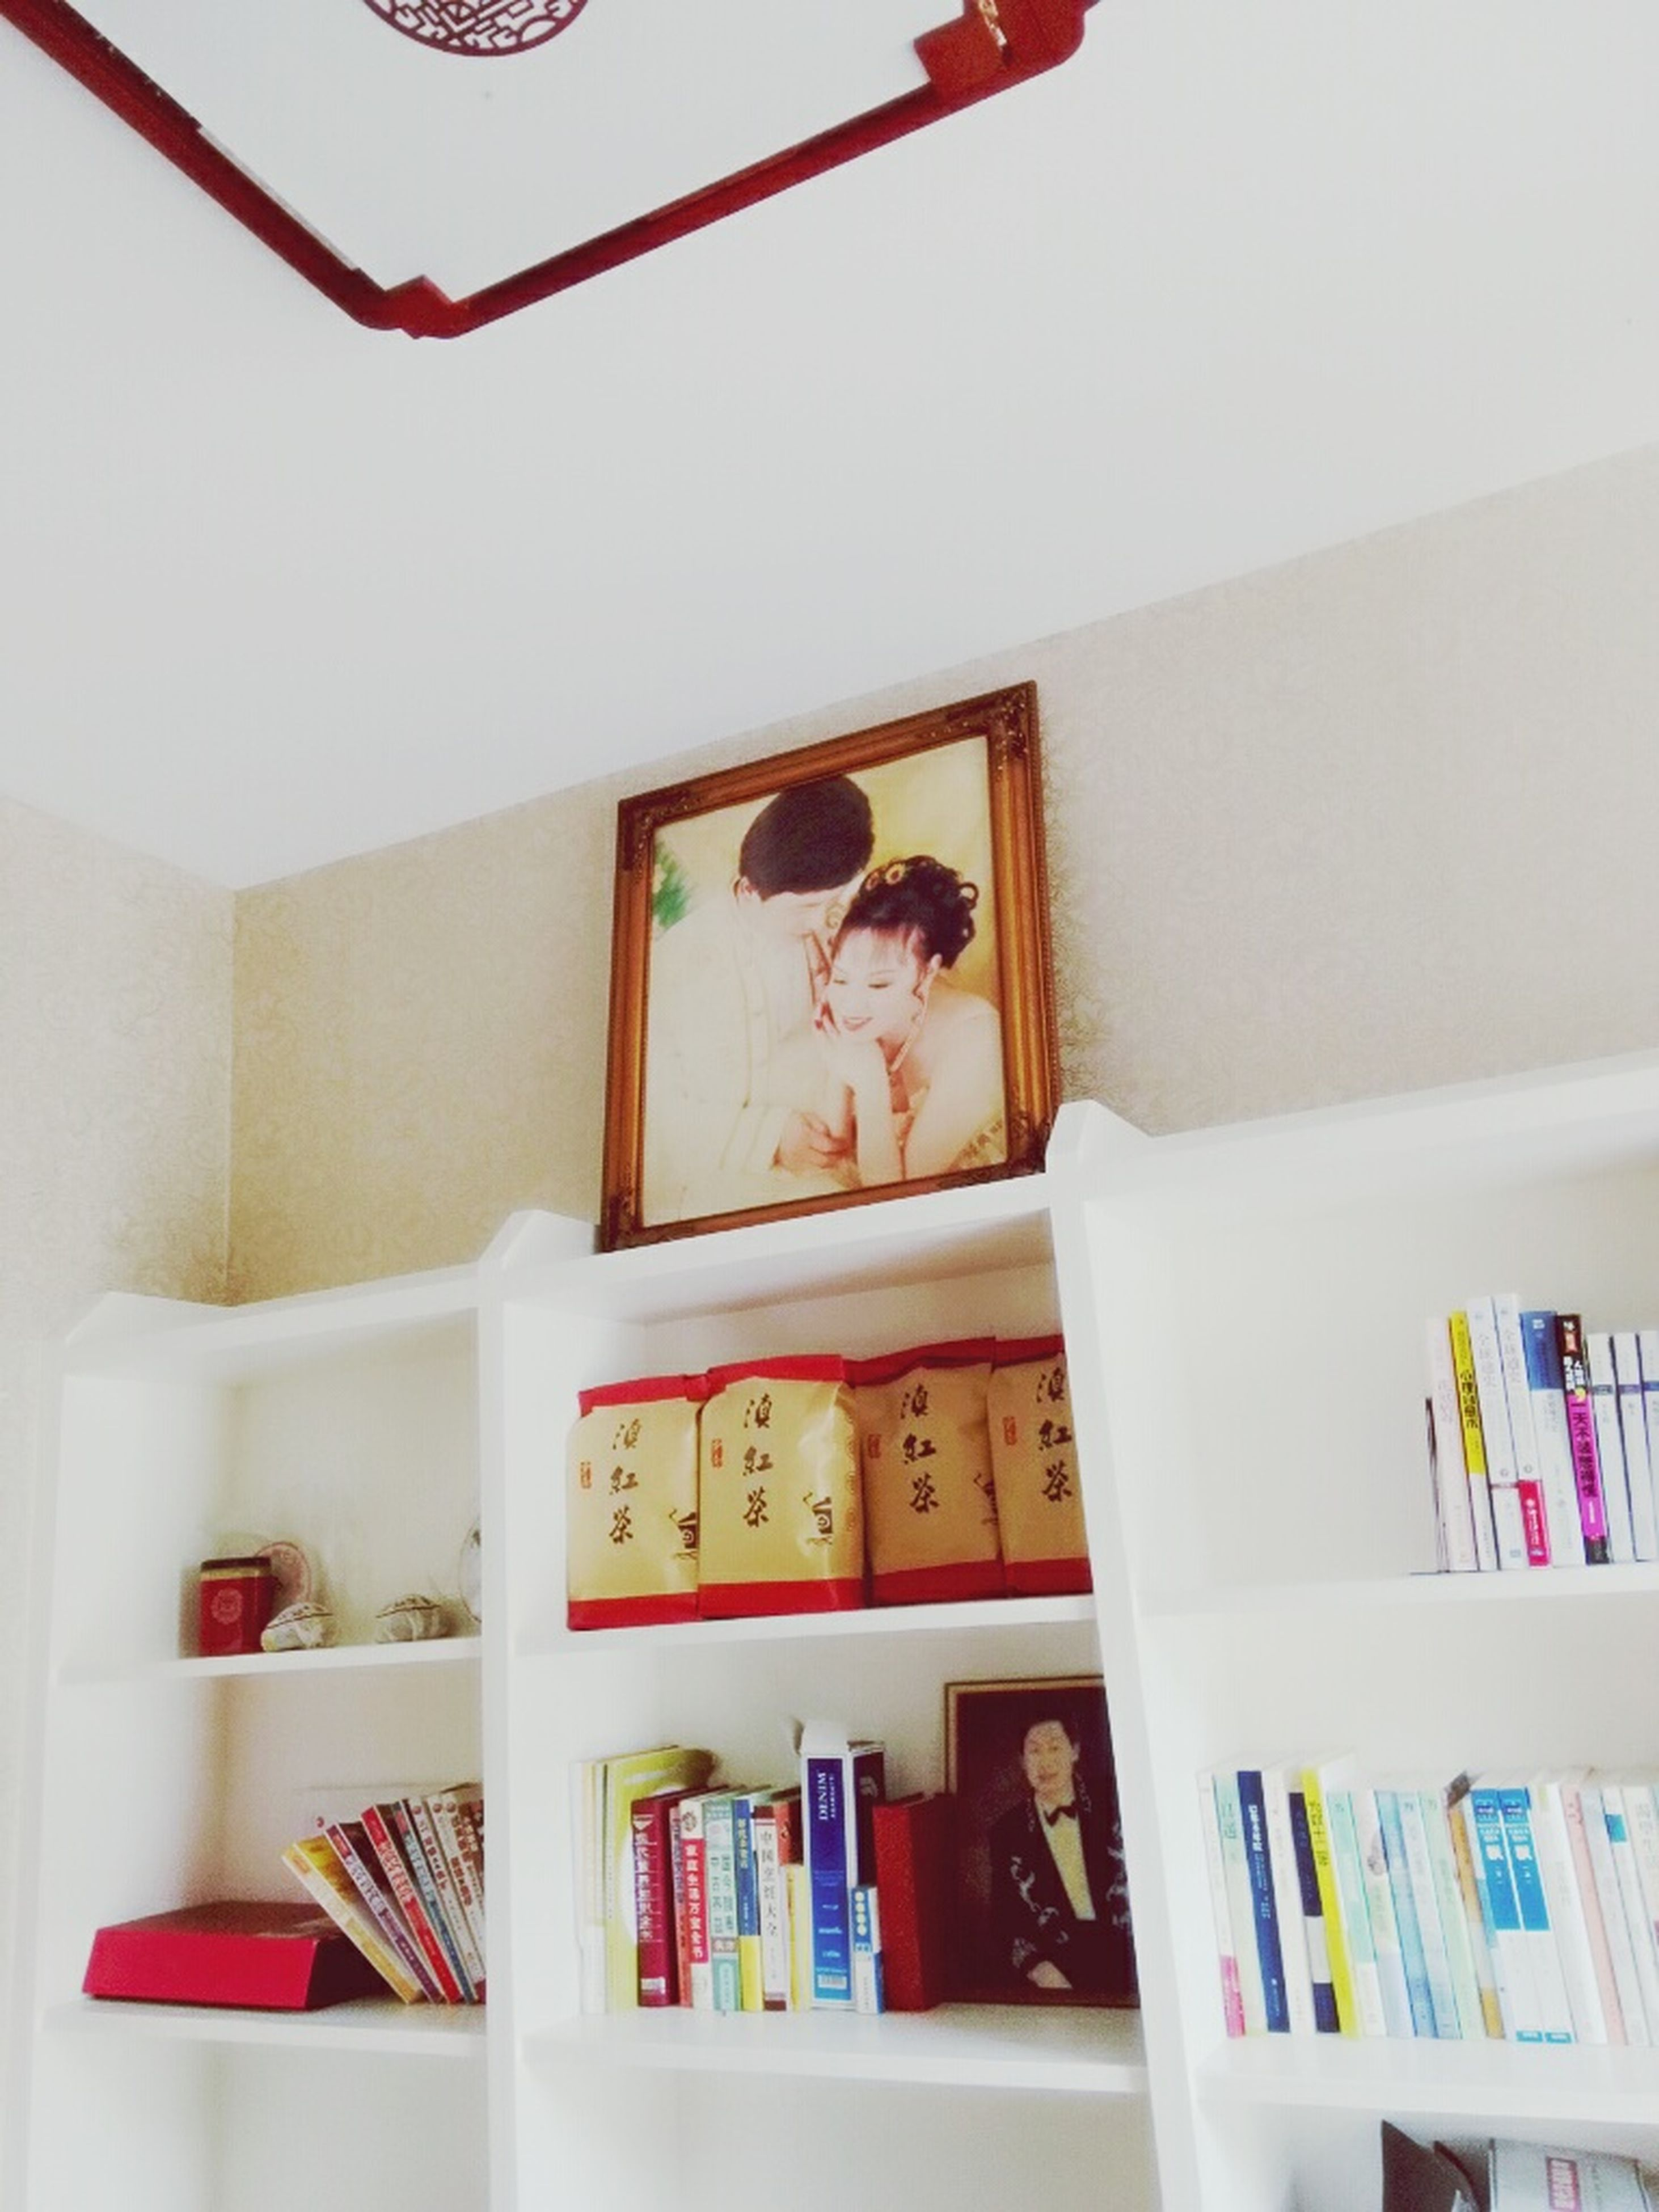 indoors, still life, variation, shelf, home interior, book, table, large group of objects, arrangement, education, choice, no people, paper, collection, multi colored, text, bed, pillow, picture frame, close-up